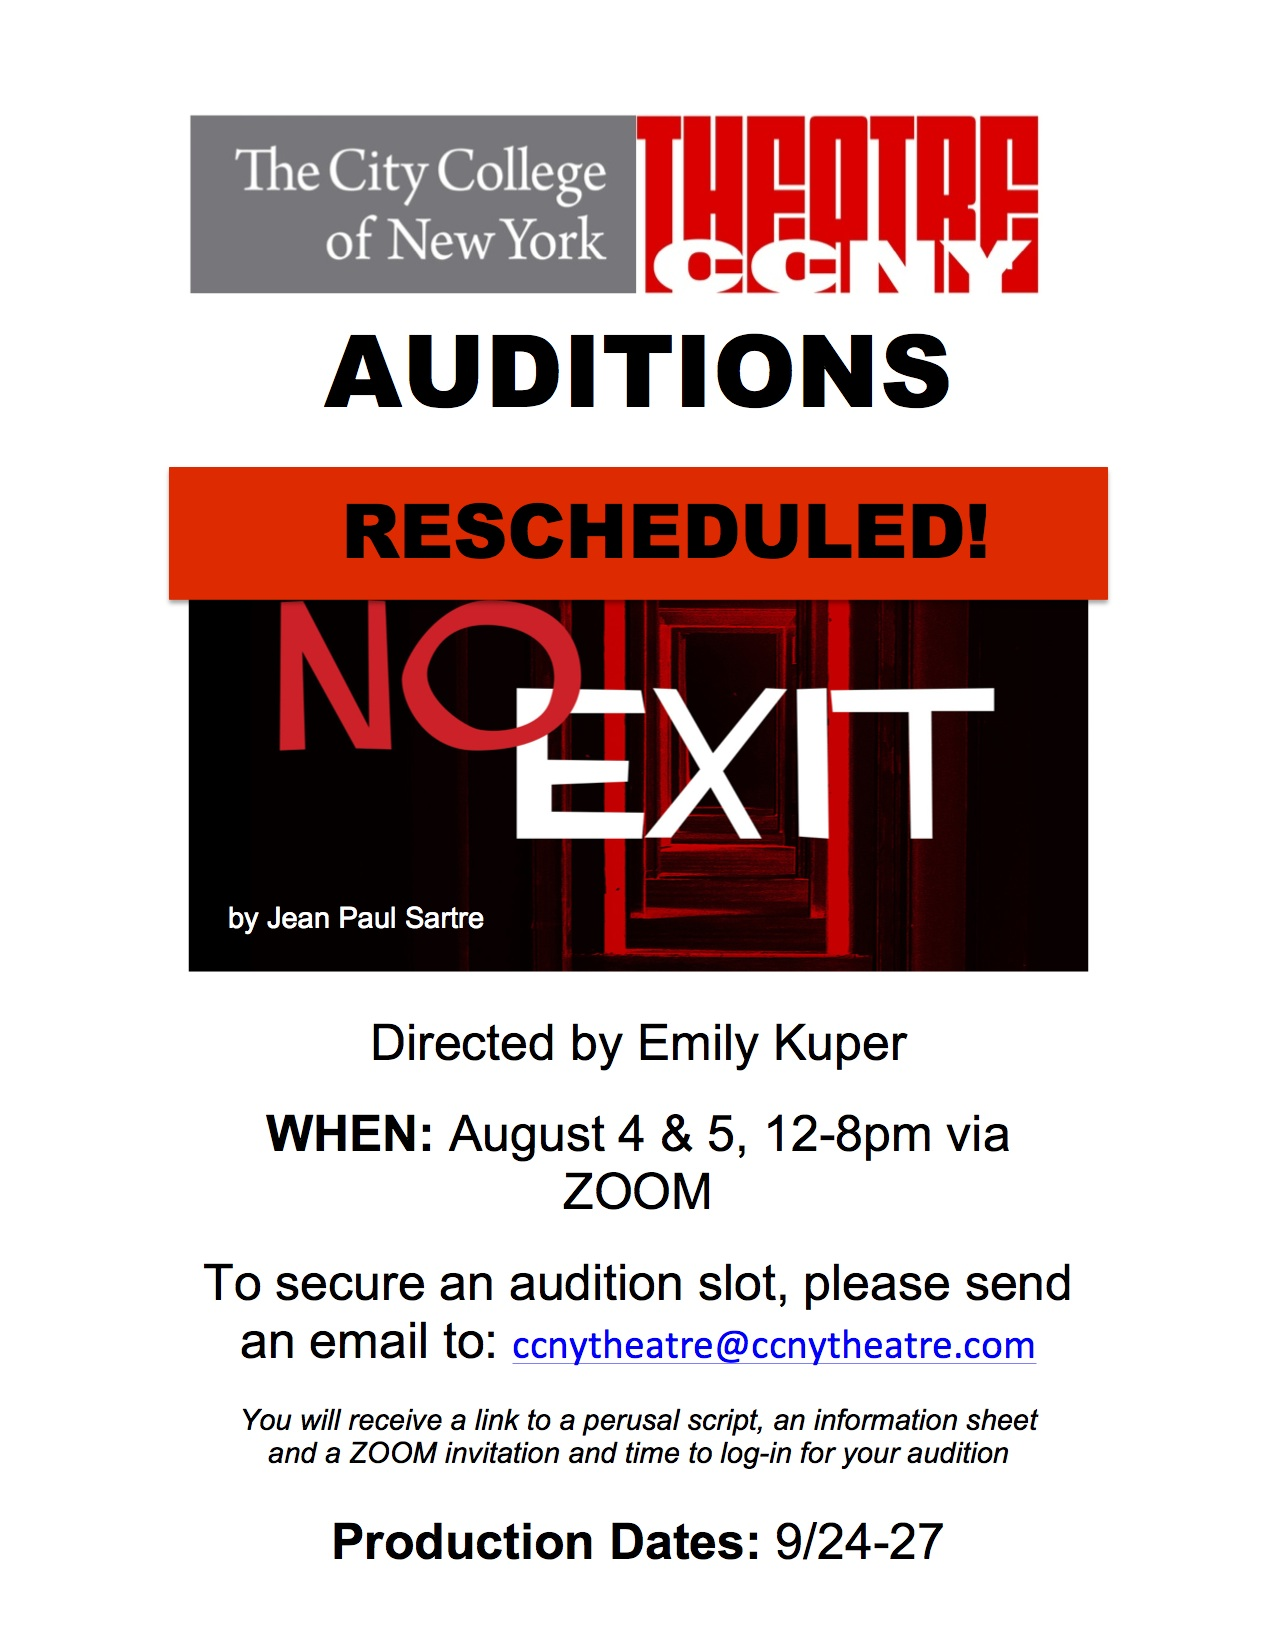 No Exit Auditions